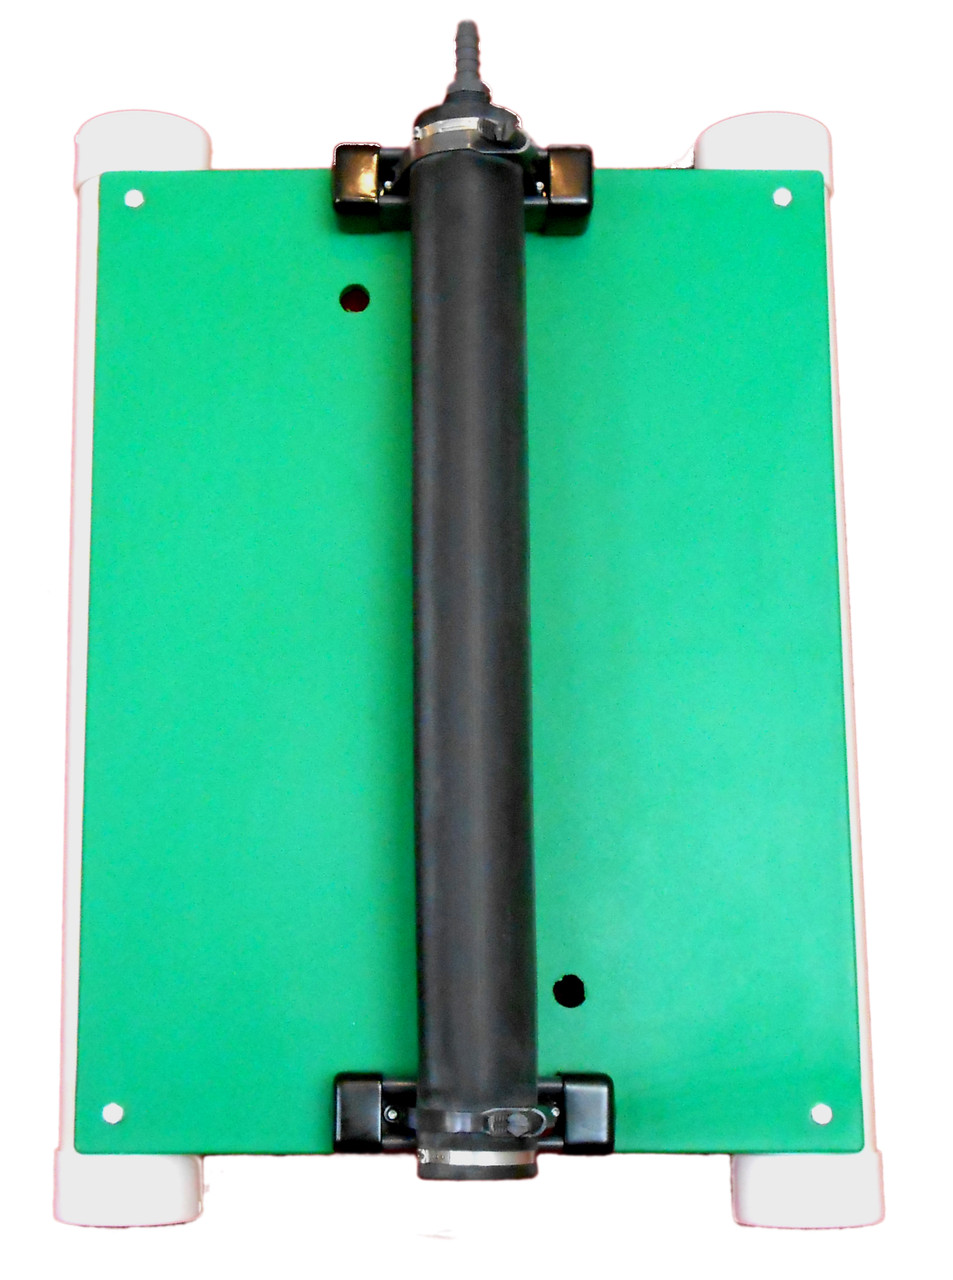 AirLift 2 Pond Aerator System (up to 4 acres)